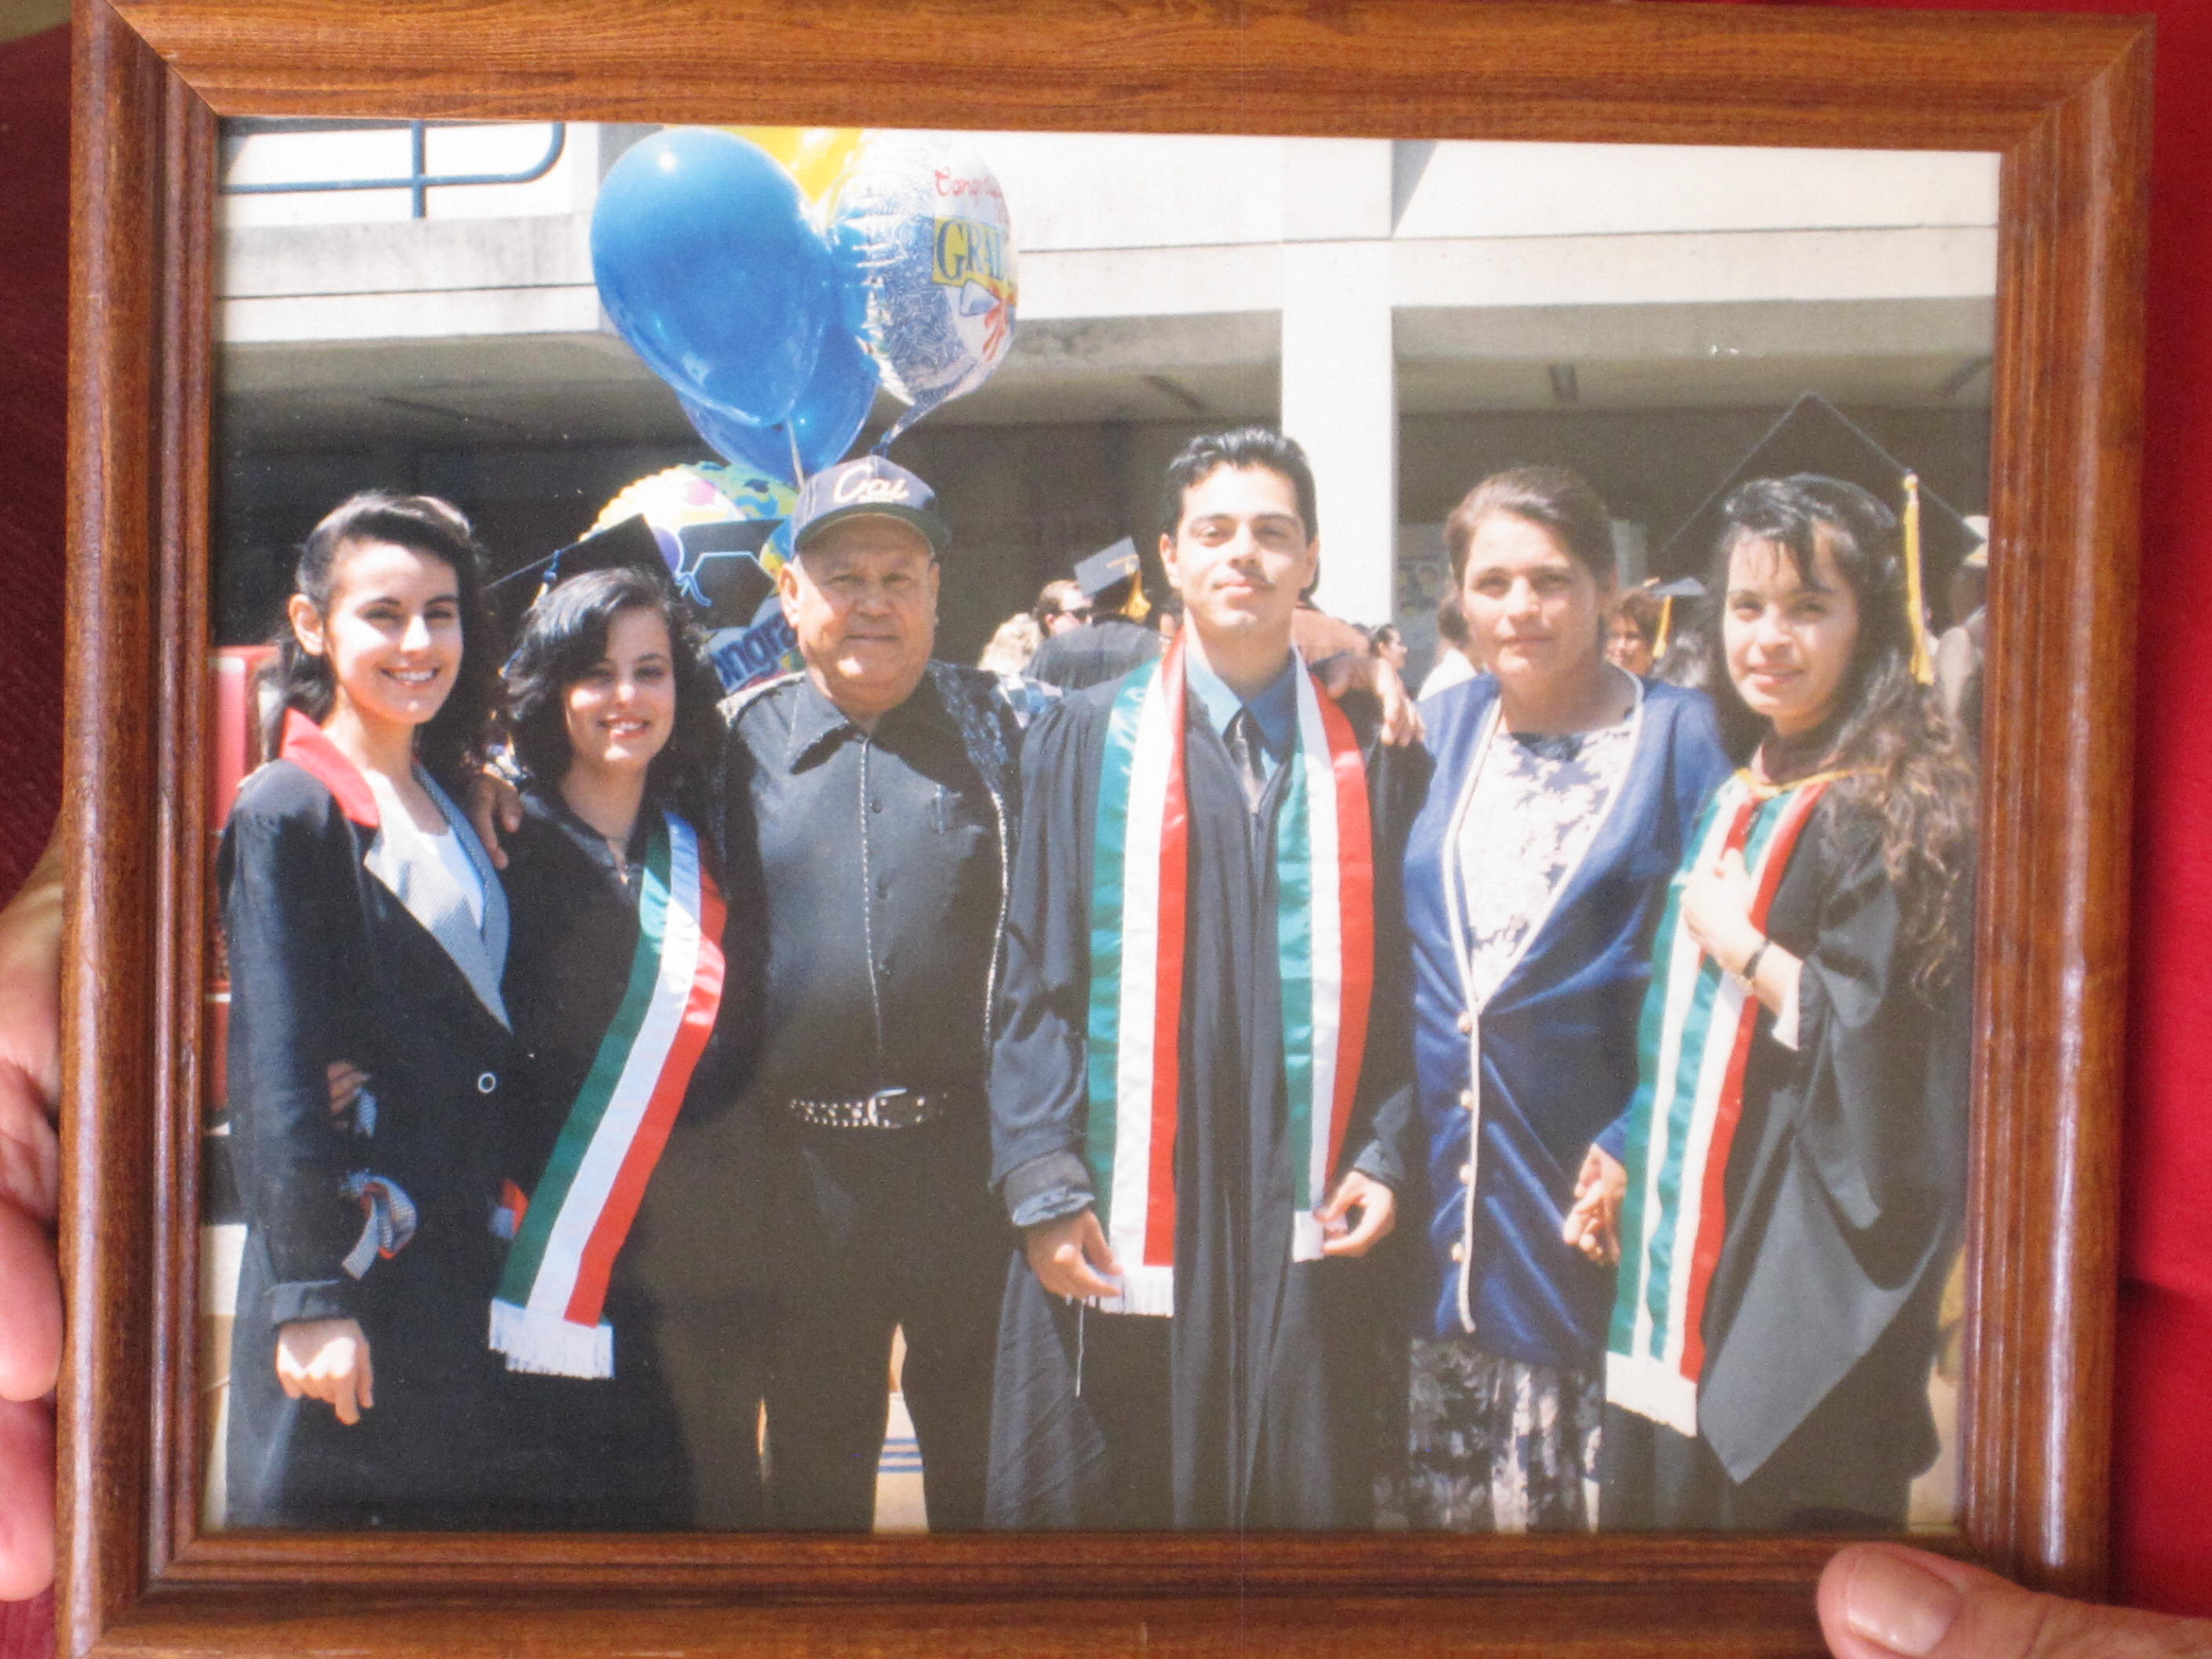 The Ramirez Family on graduation day for Fabian and Maria for their B.A. and Gloria for her master's degree. Photo: Zaidee Stavely